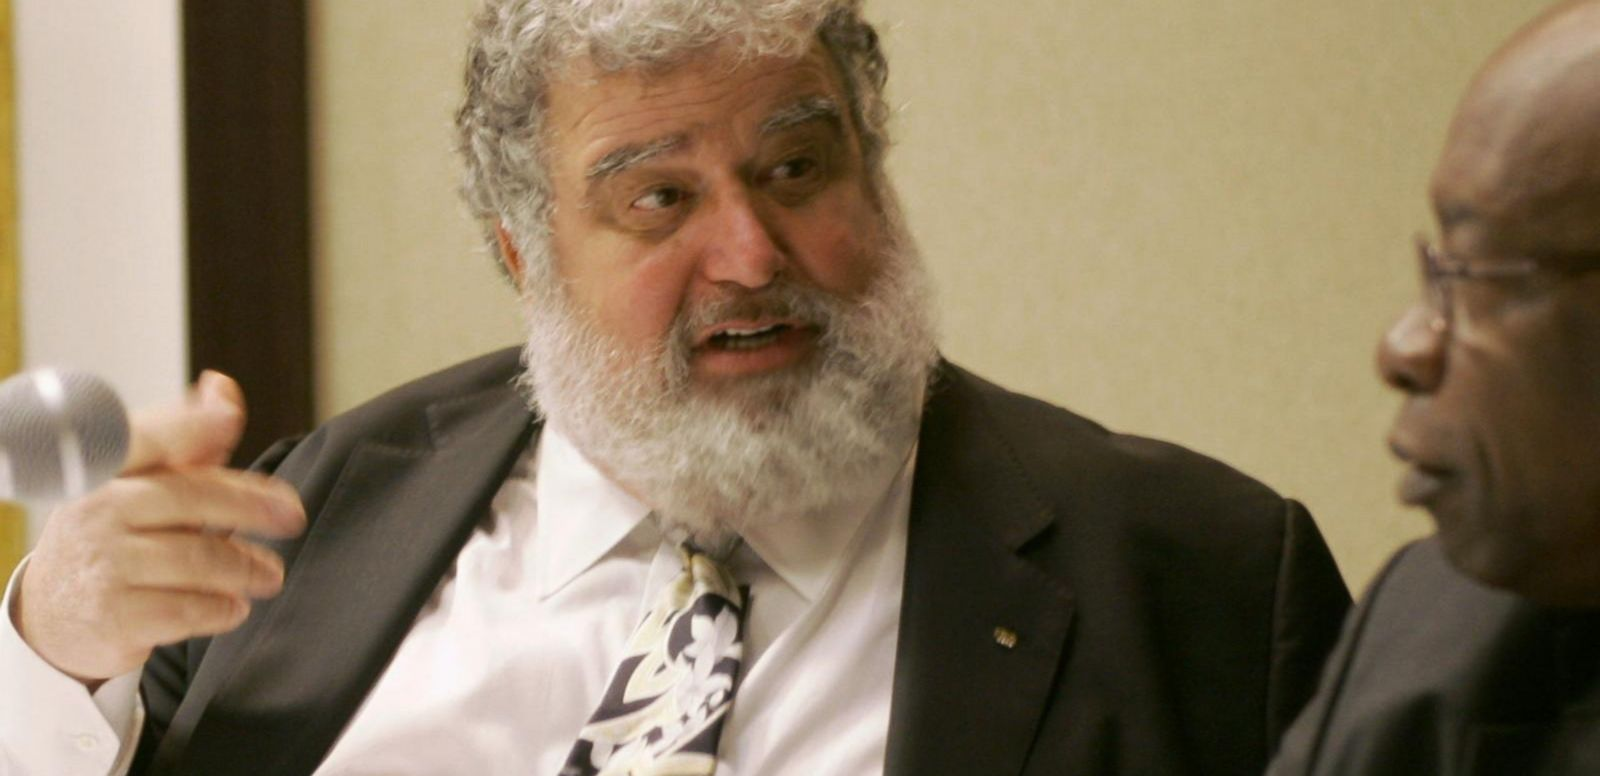 VIDEO: FIFA Officials Arrested in Corruption Investigation